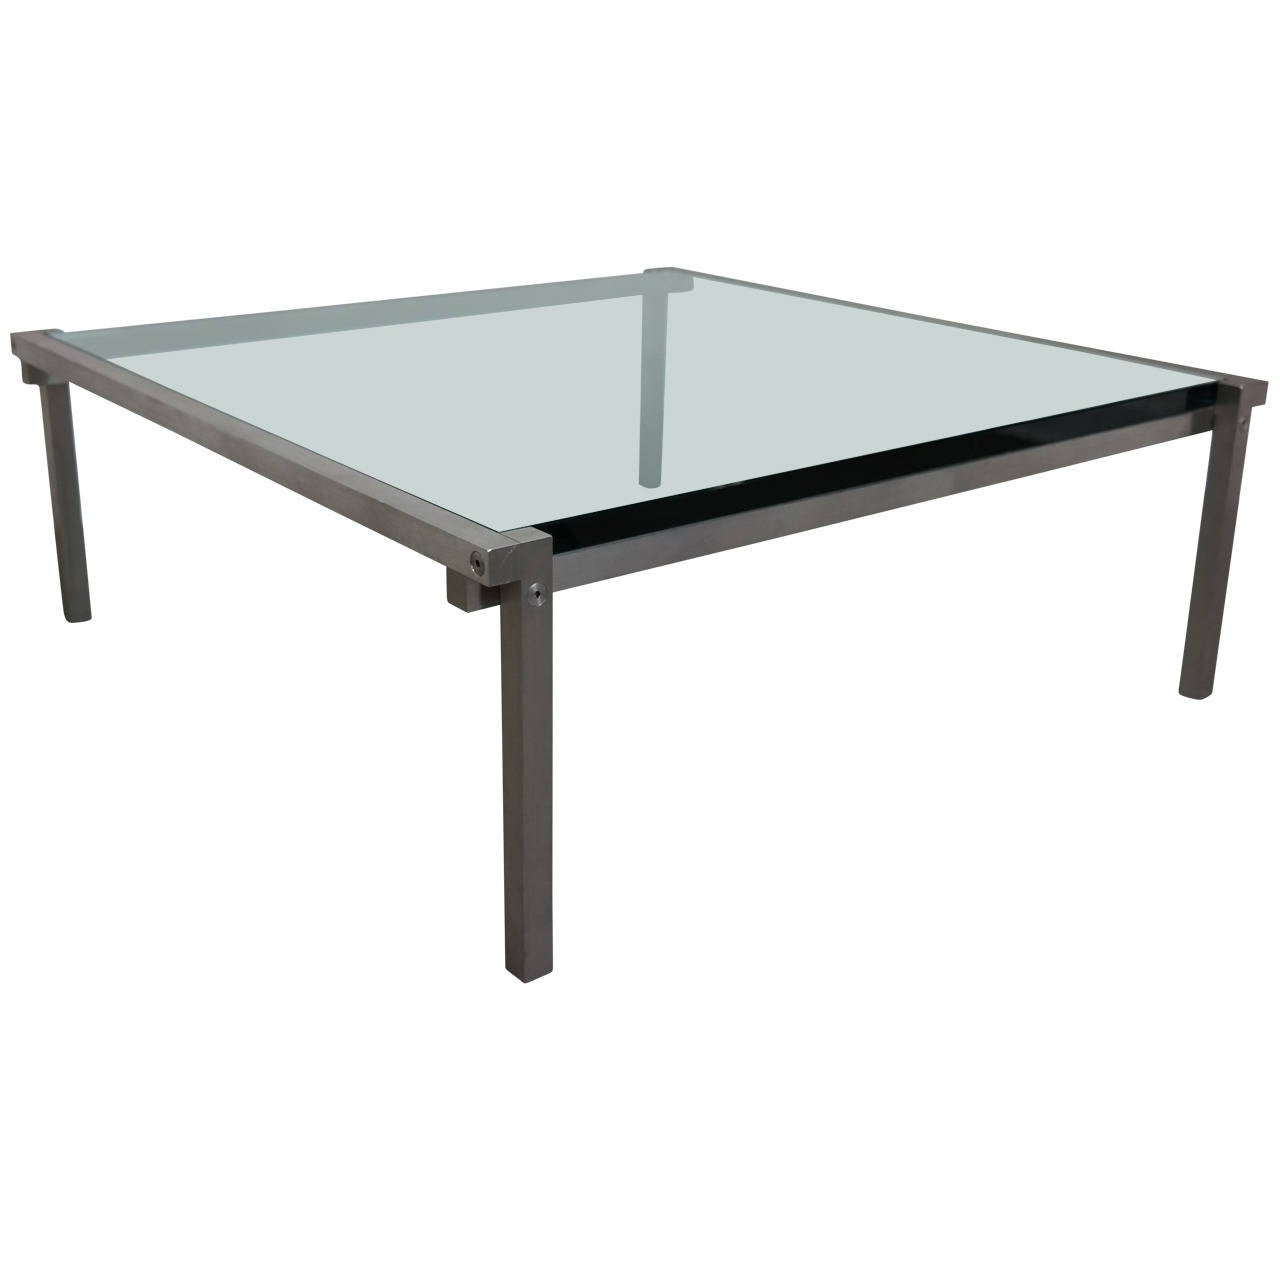 Solid aluminum and glass top architectural coffee table at for Architectural coffee table